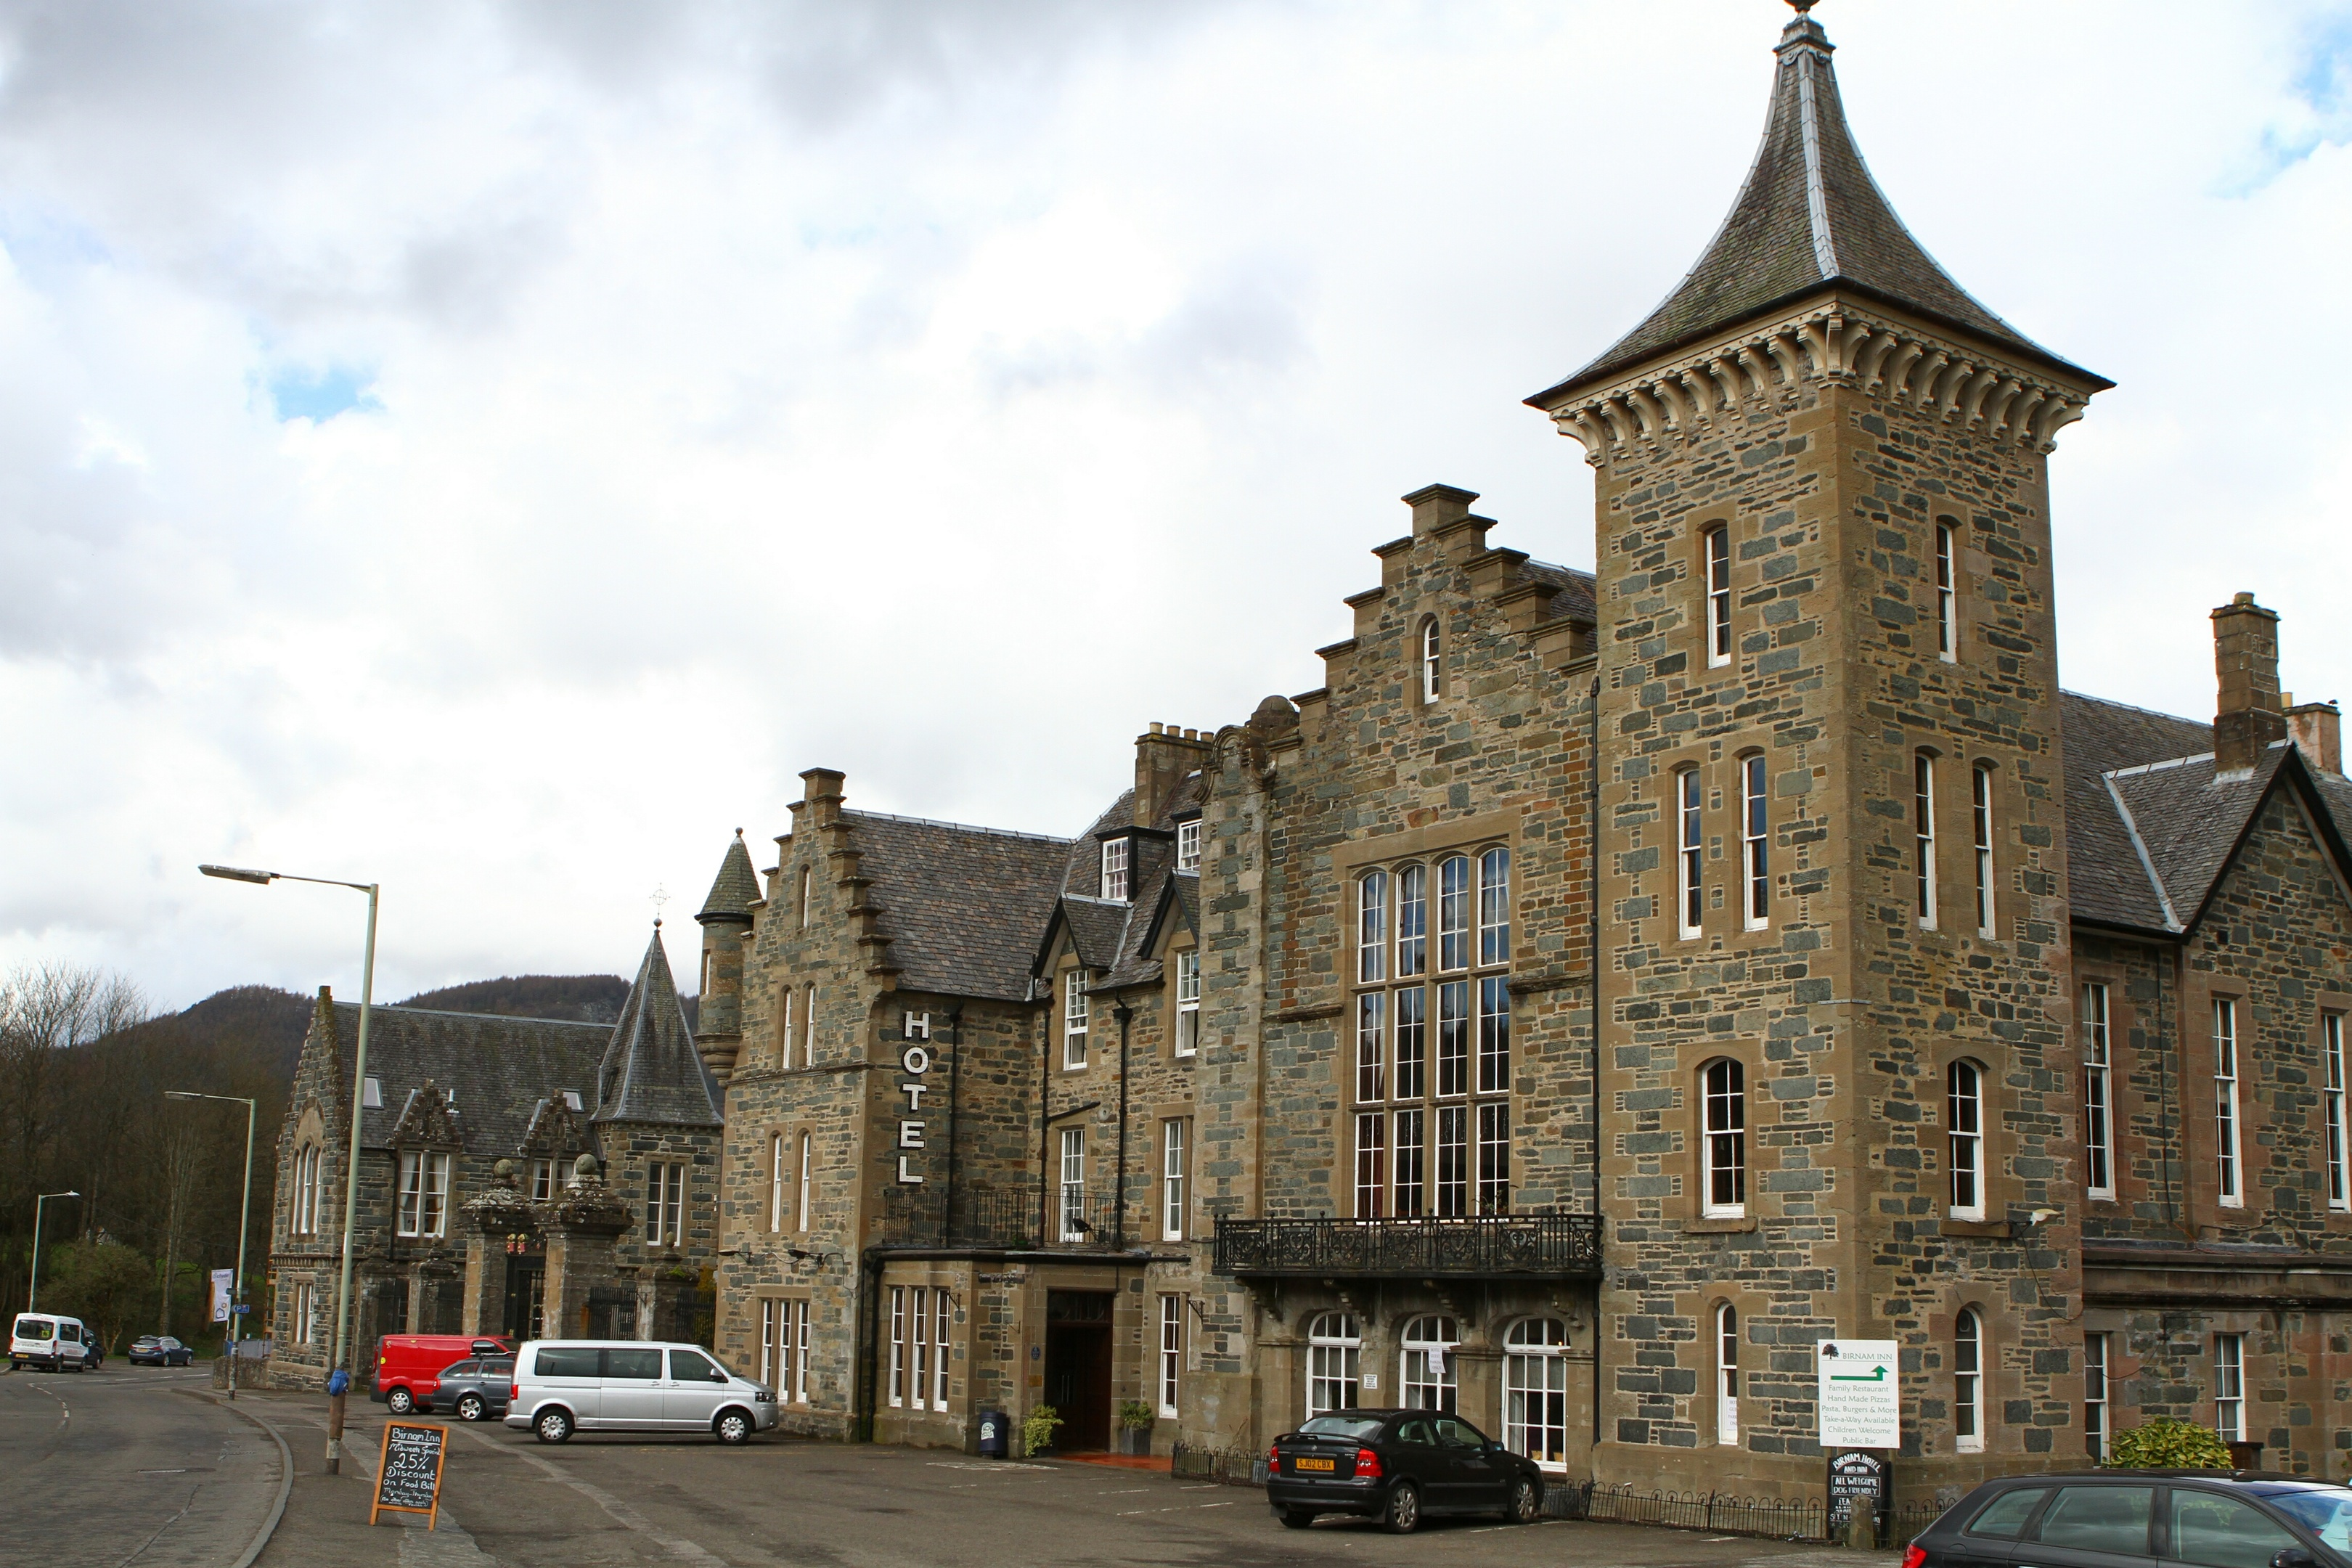 The Birnam Hotel is among the sites chosen.